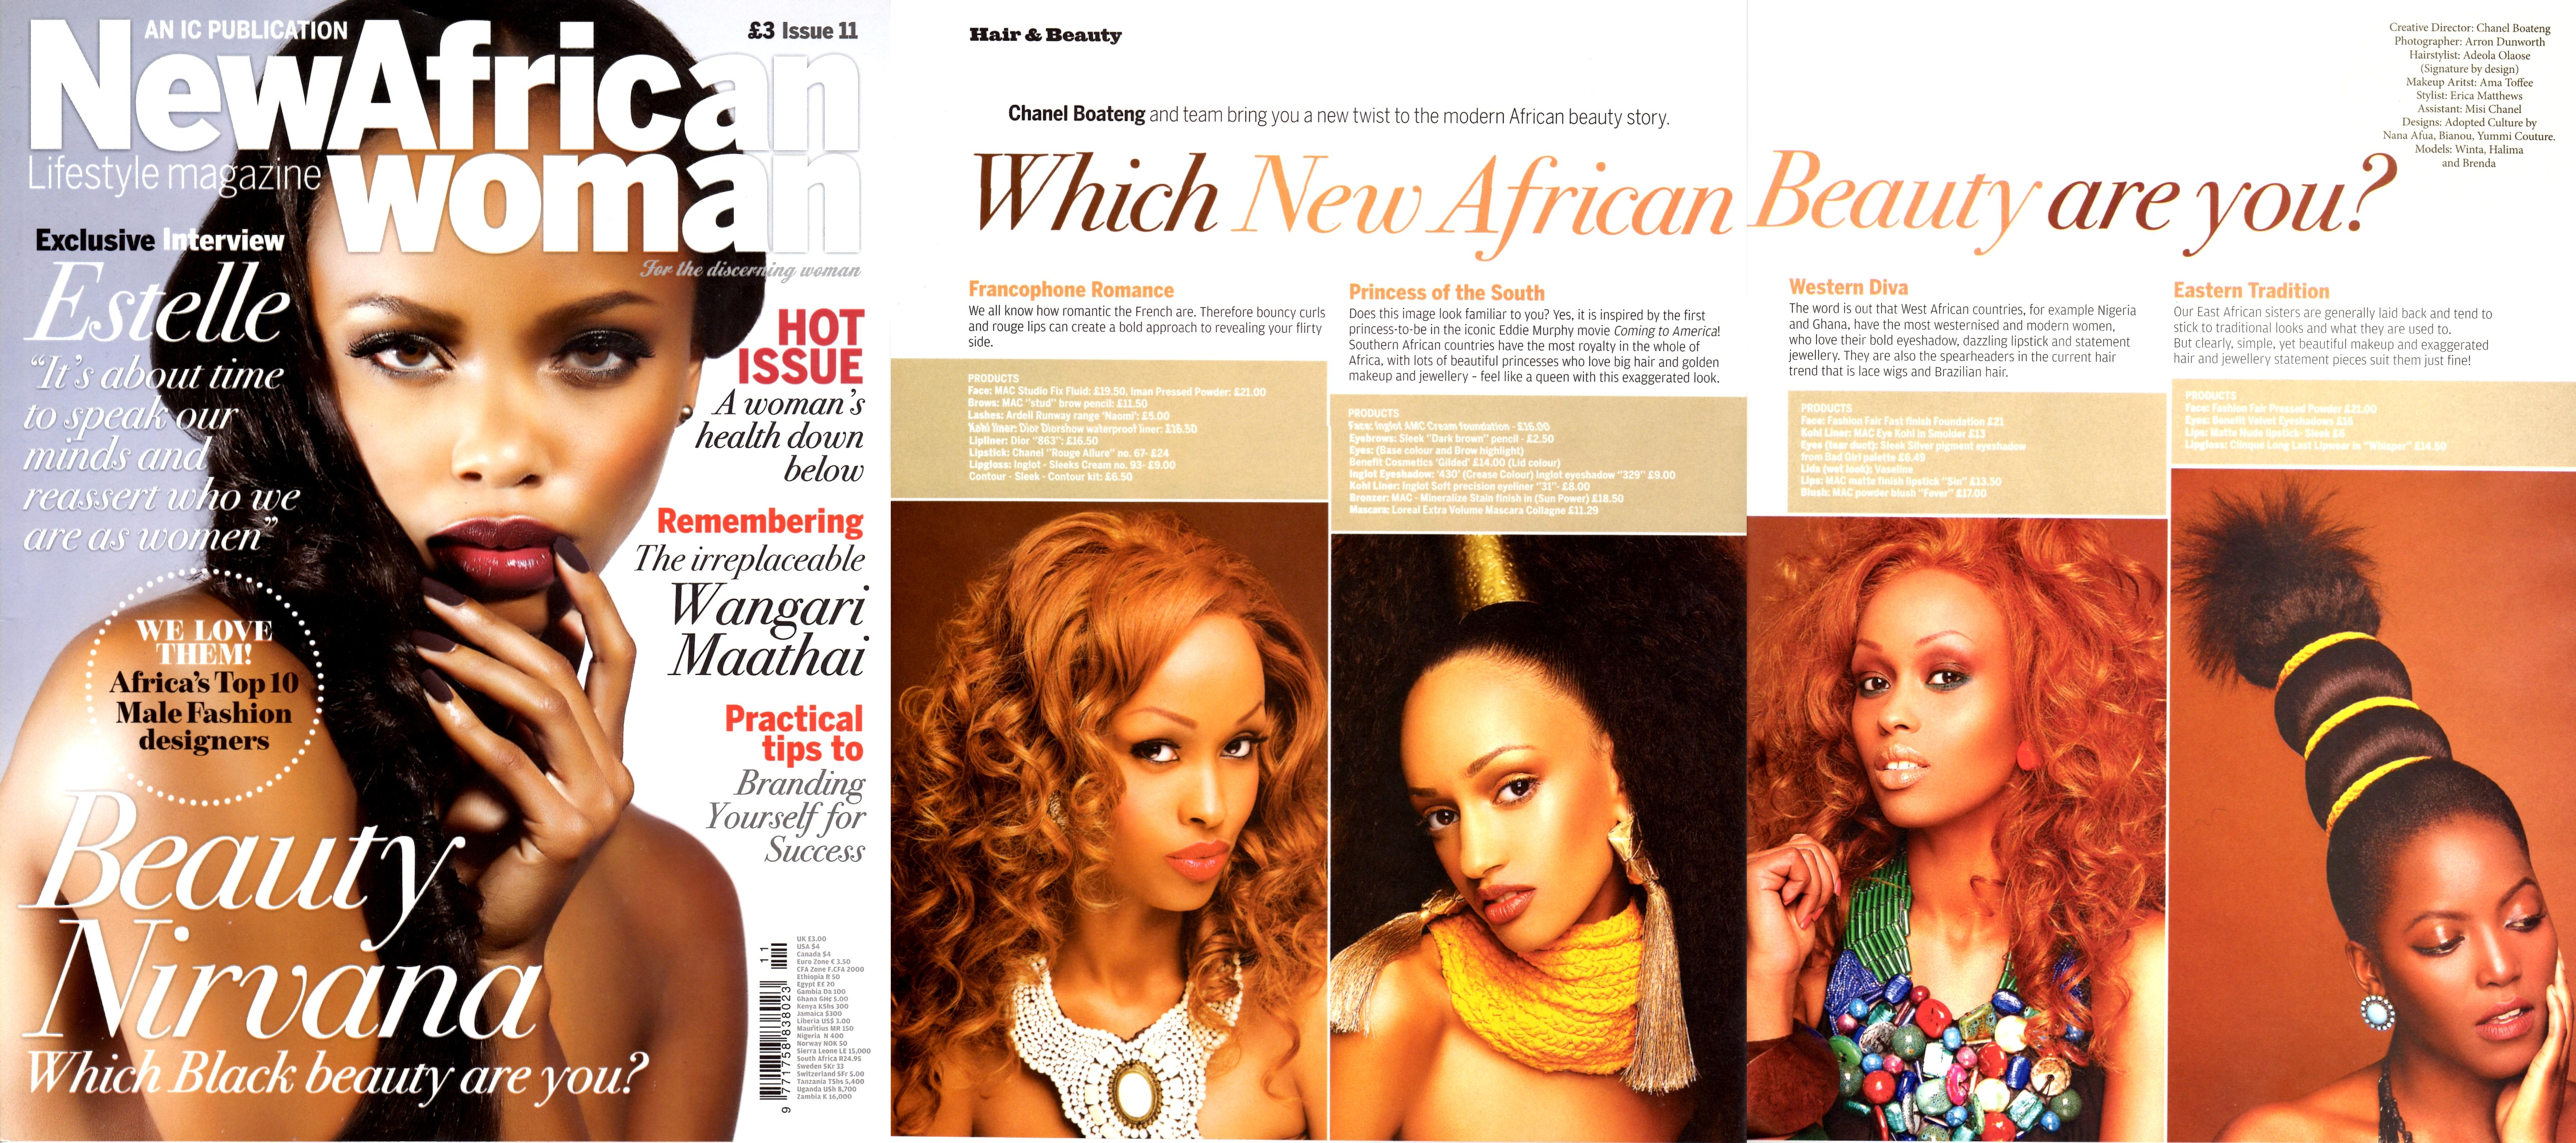 MY STYLIST WORK: BEHIND THE SCENES OF NEW AFRICAN WOMAN; EAST AFRICAN BEAUTY SHOOT!!